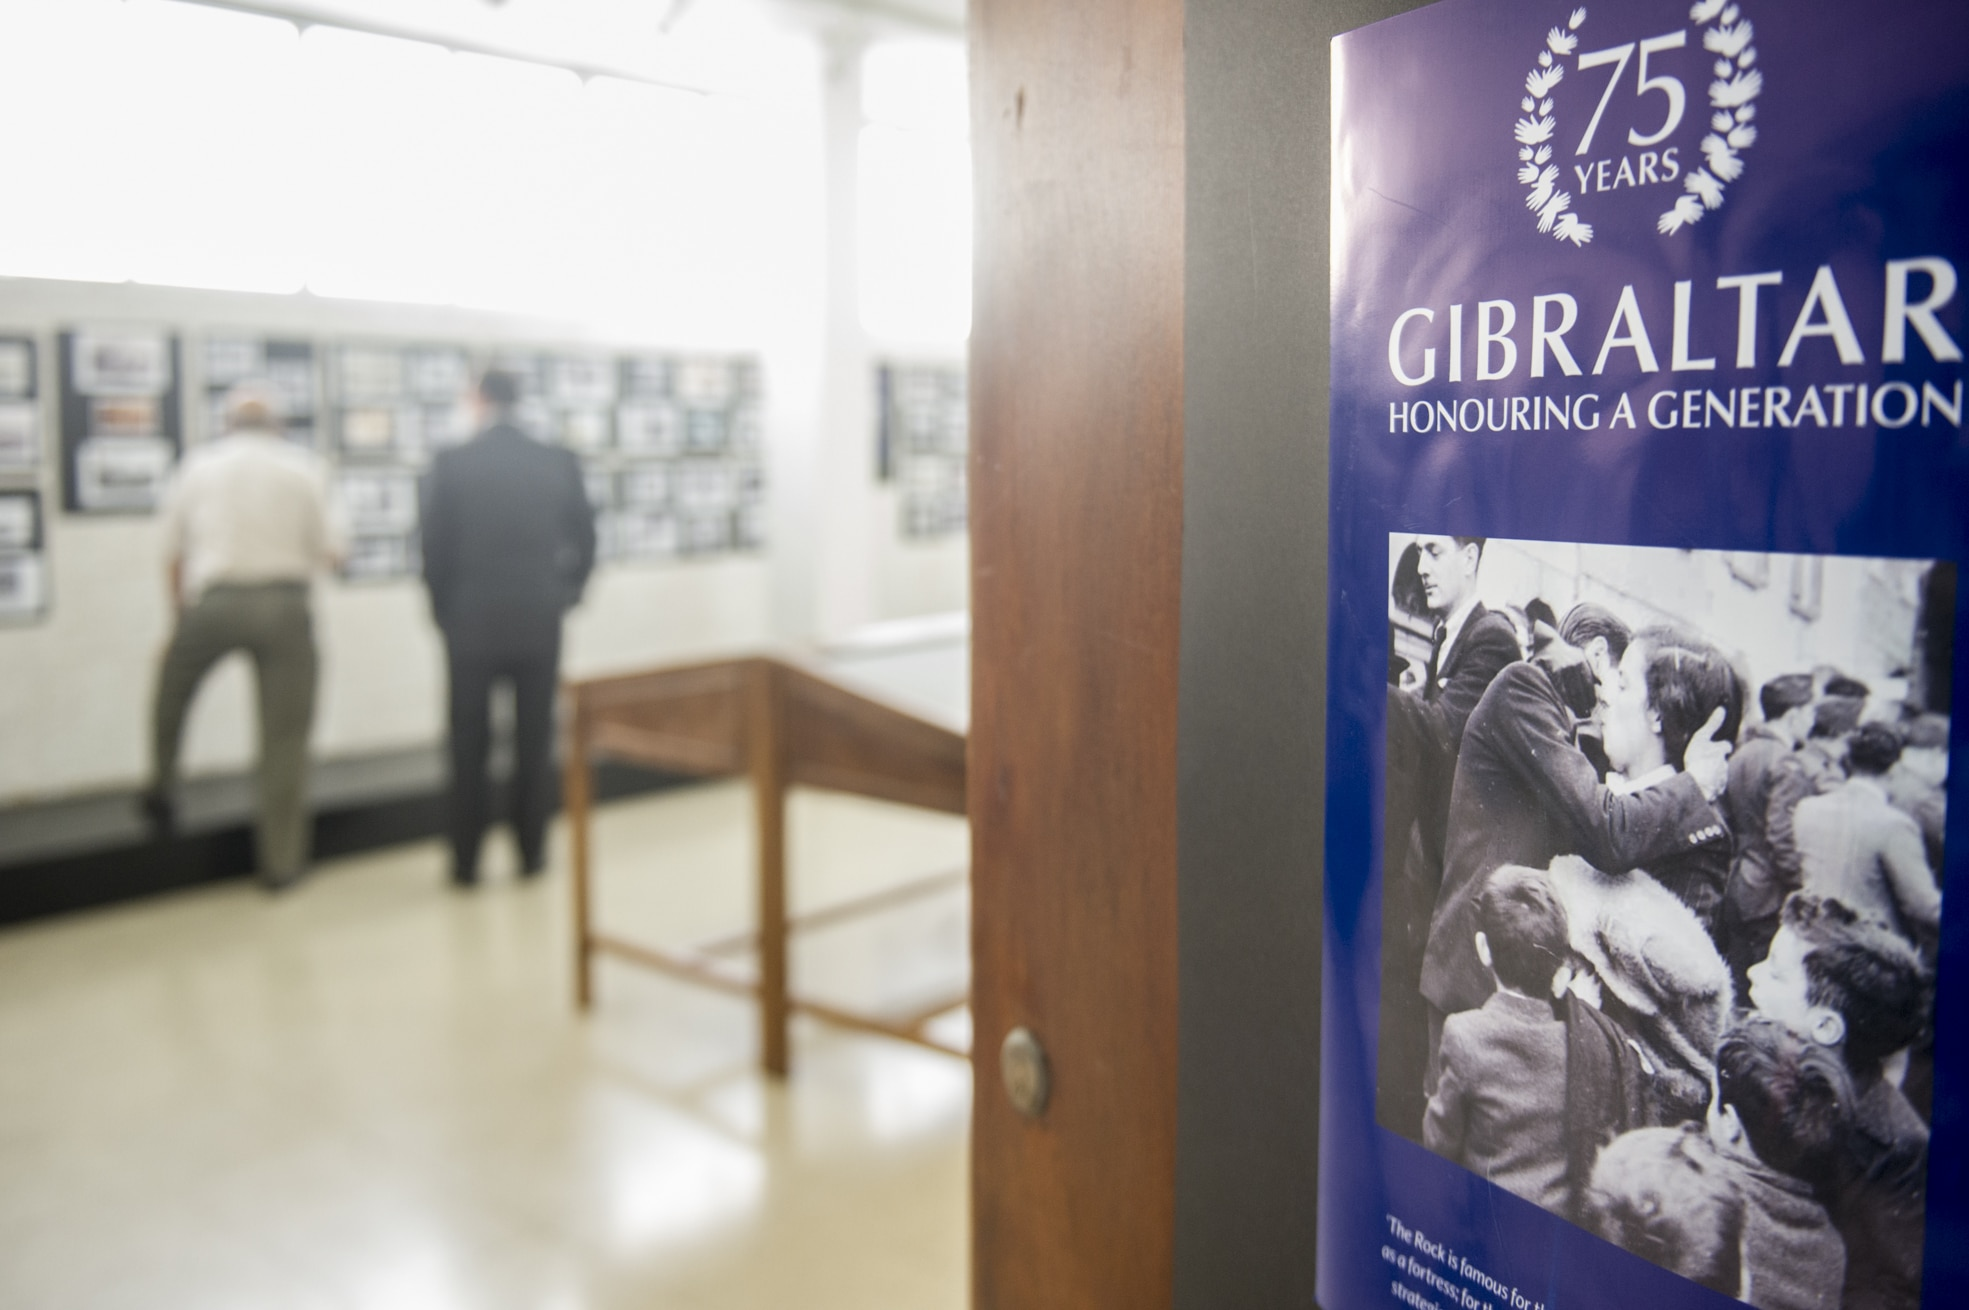 75-years-gibraltar-honouring-generation-01_16940677333_o